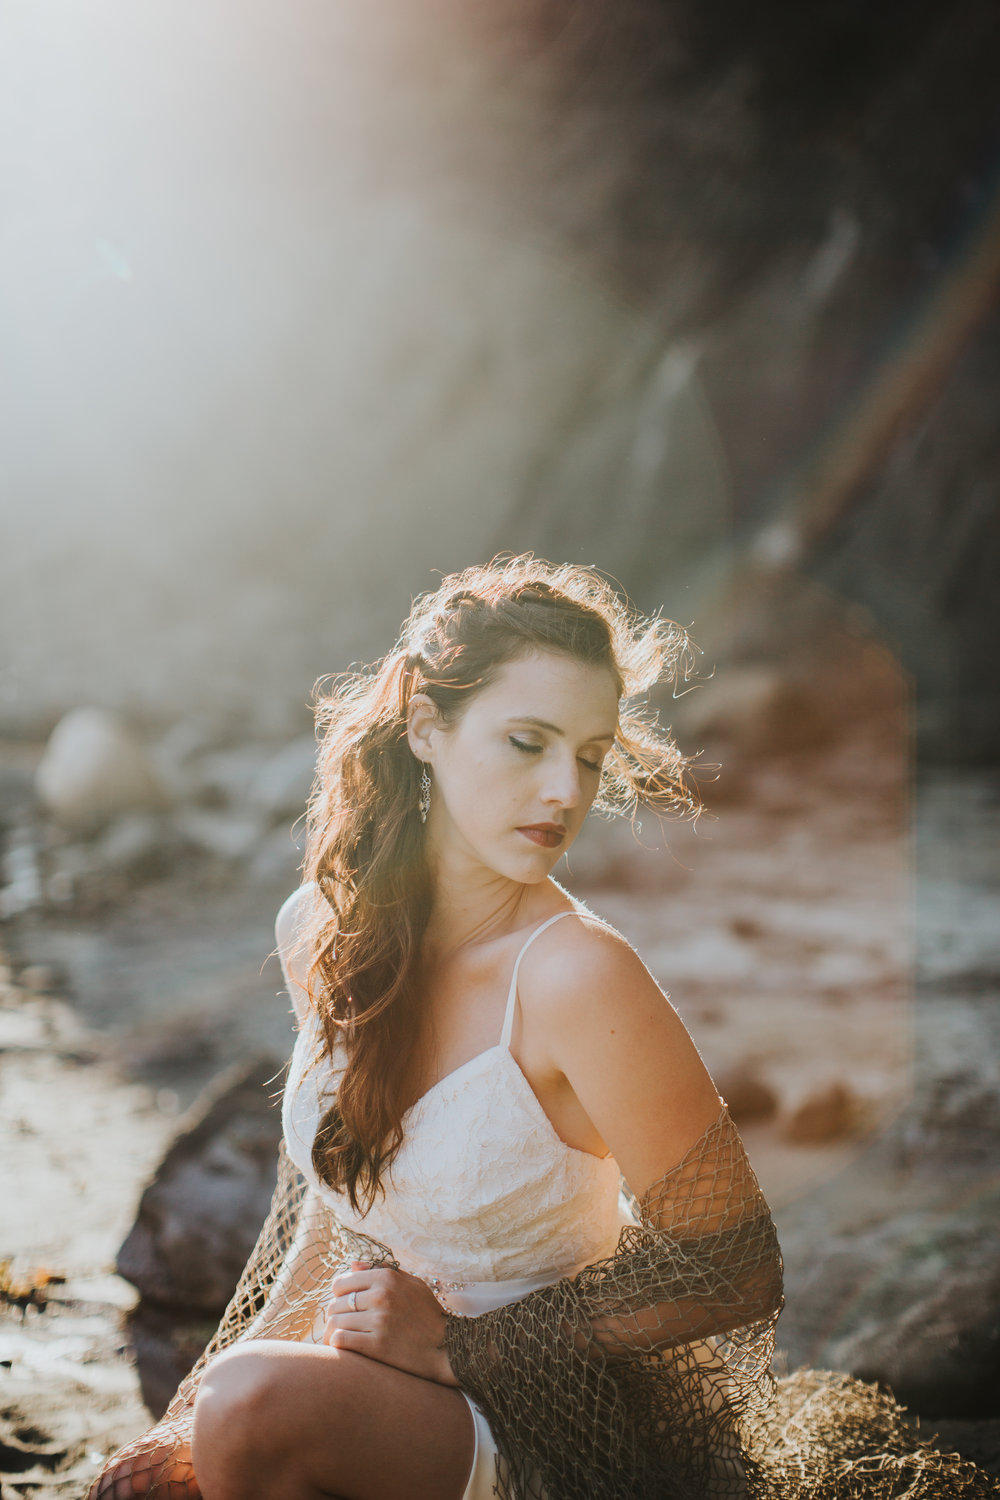 Port-Angeles-Salt-Creek-beach-wedding-bride-PNW-olympic-peninsula-photographer-Kayla-Dawn-Photography-outdoors-golden-hour-dancer-dress (31).jpg